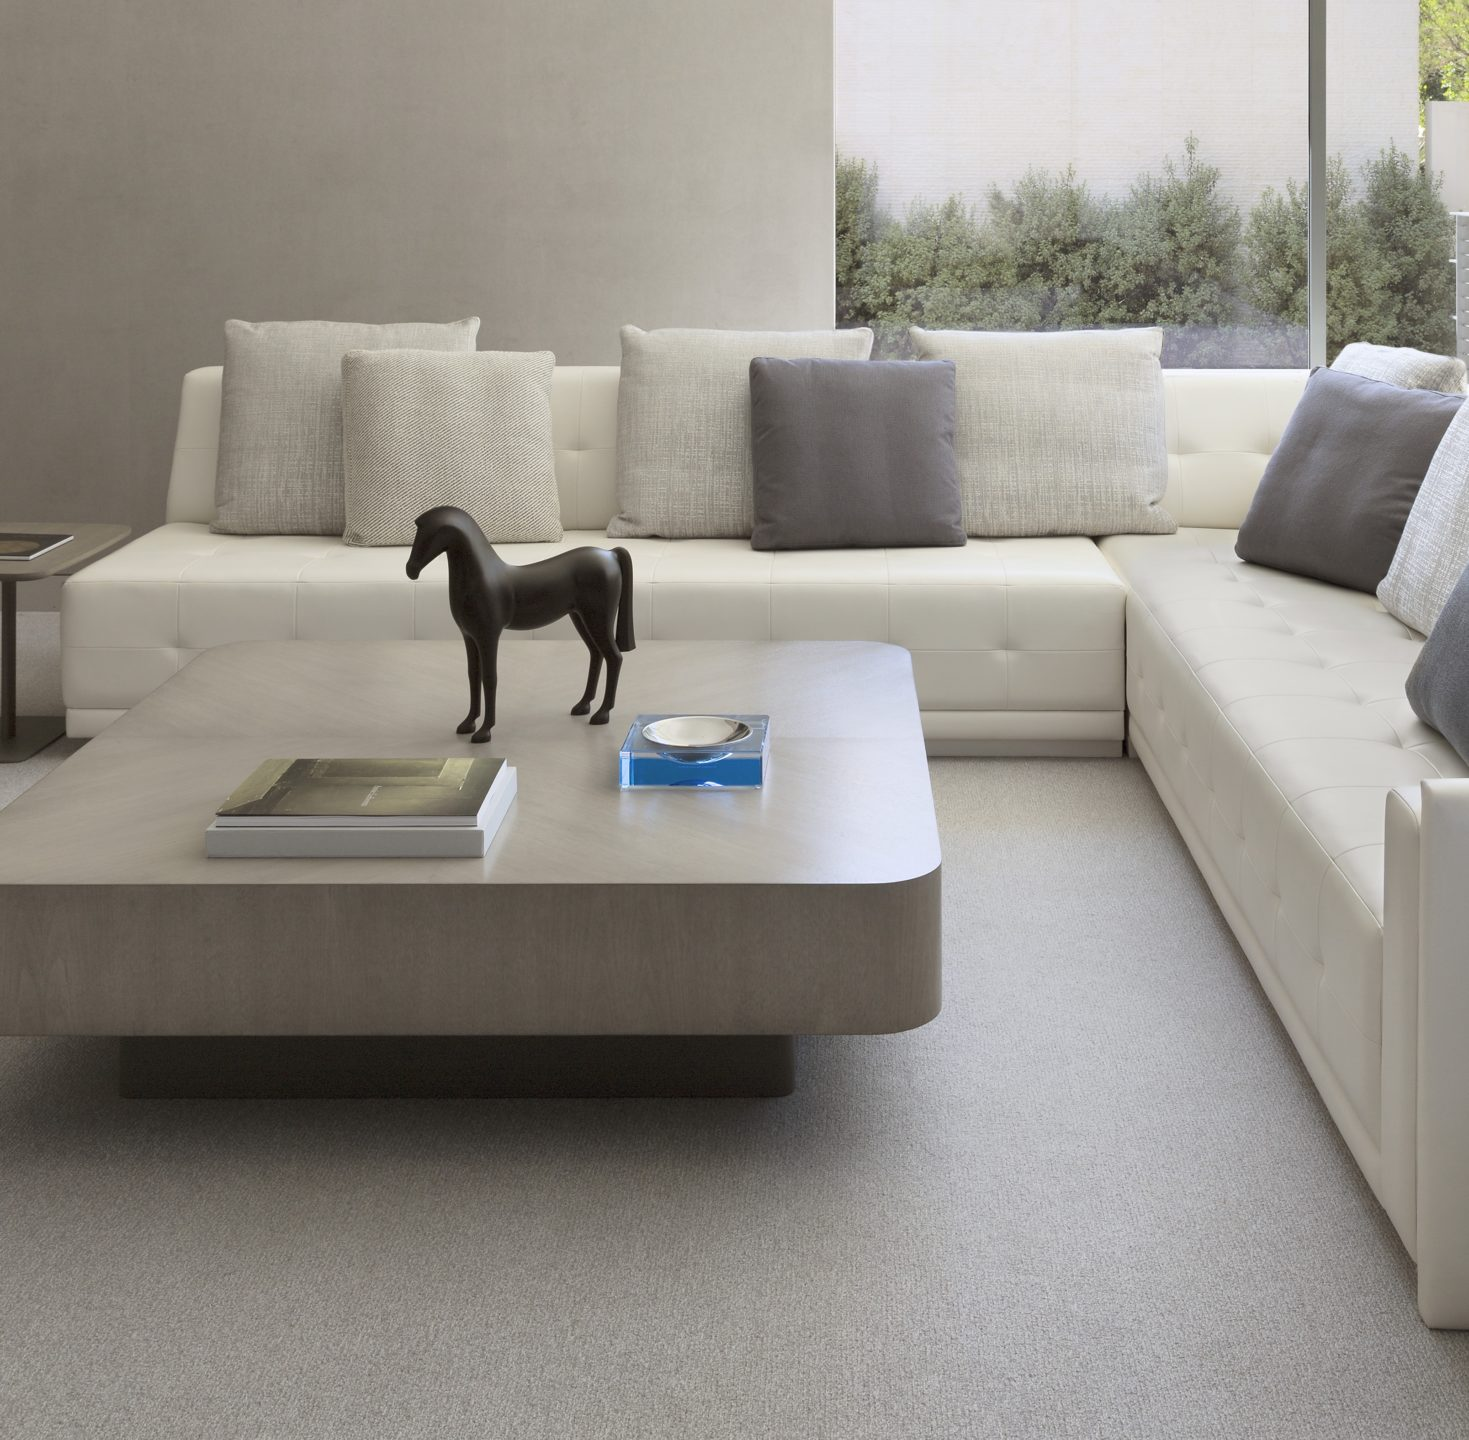 Studio_William_Hefner_products_leia_coffee_table_LR_living_room_cropped